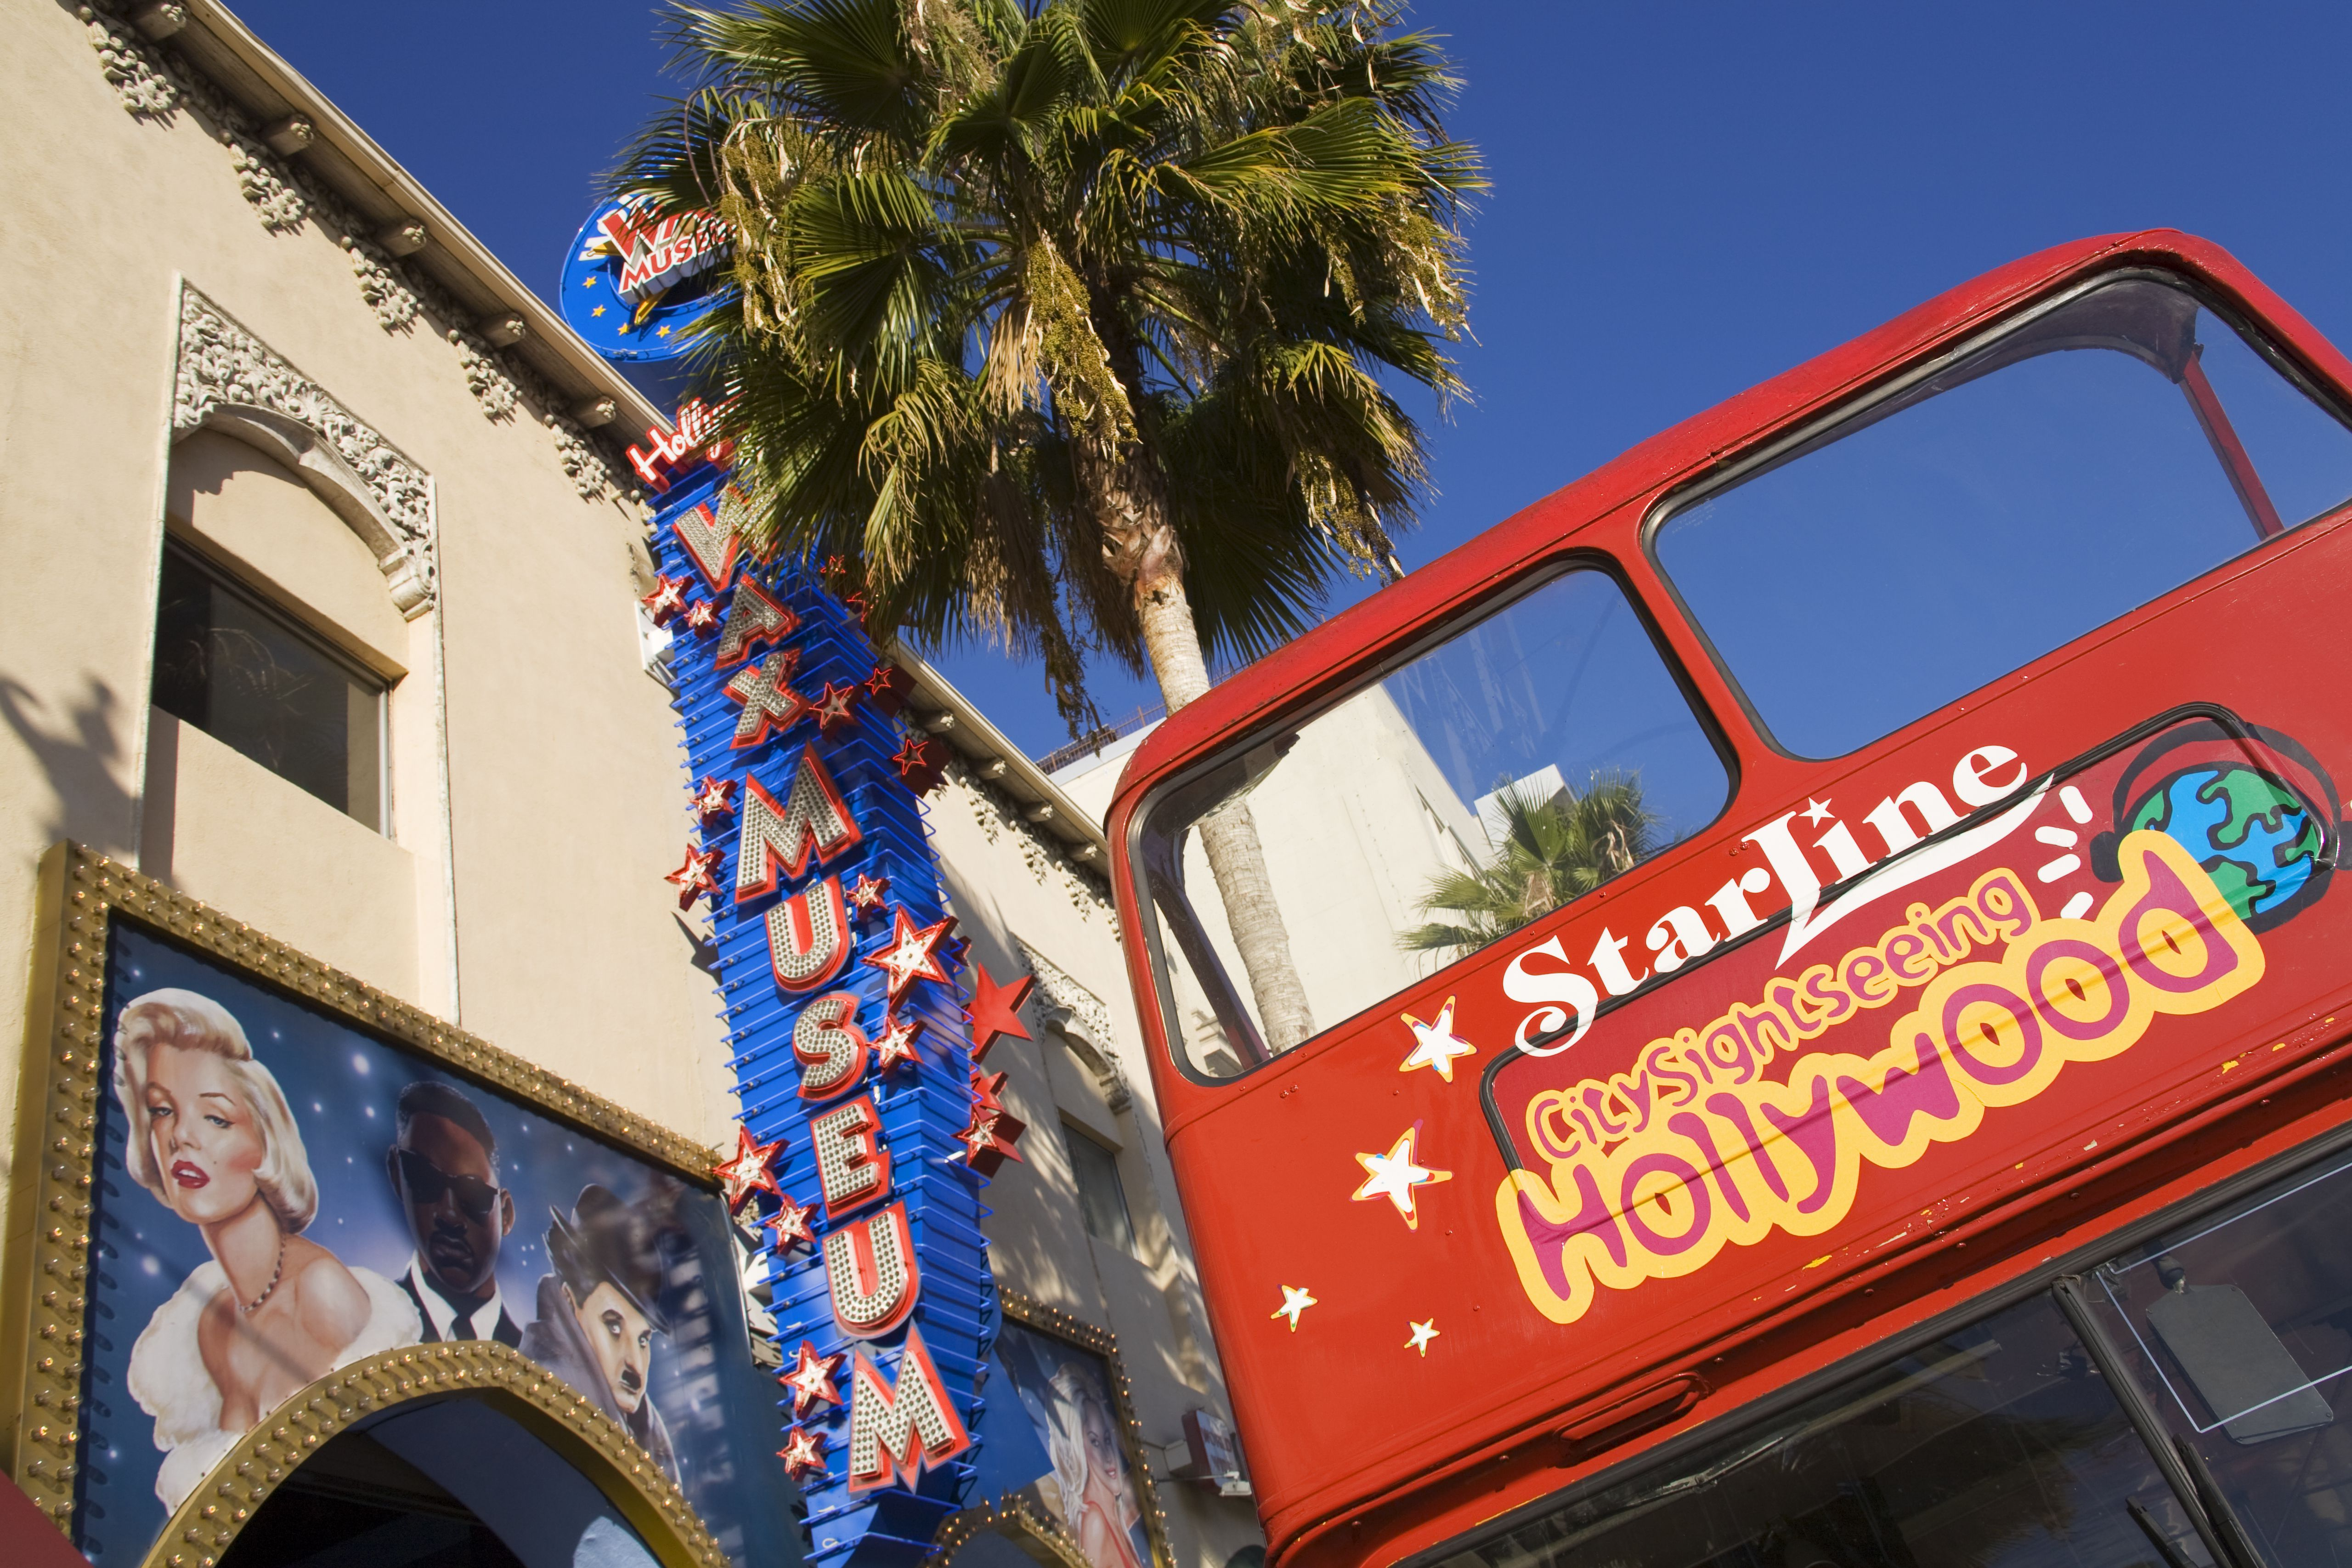 Tour Bus And Hollywood Wax Museum